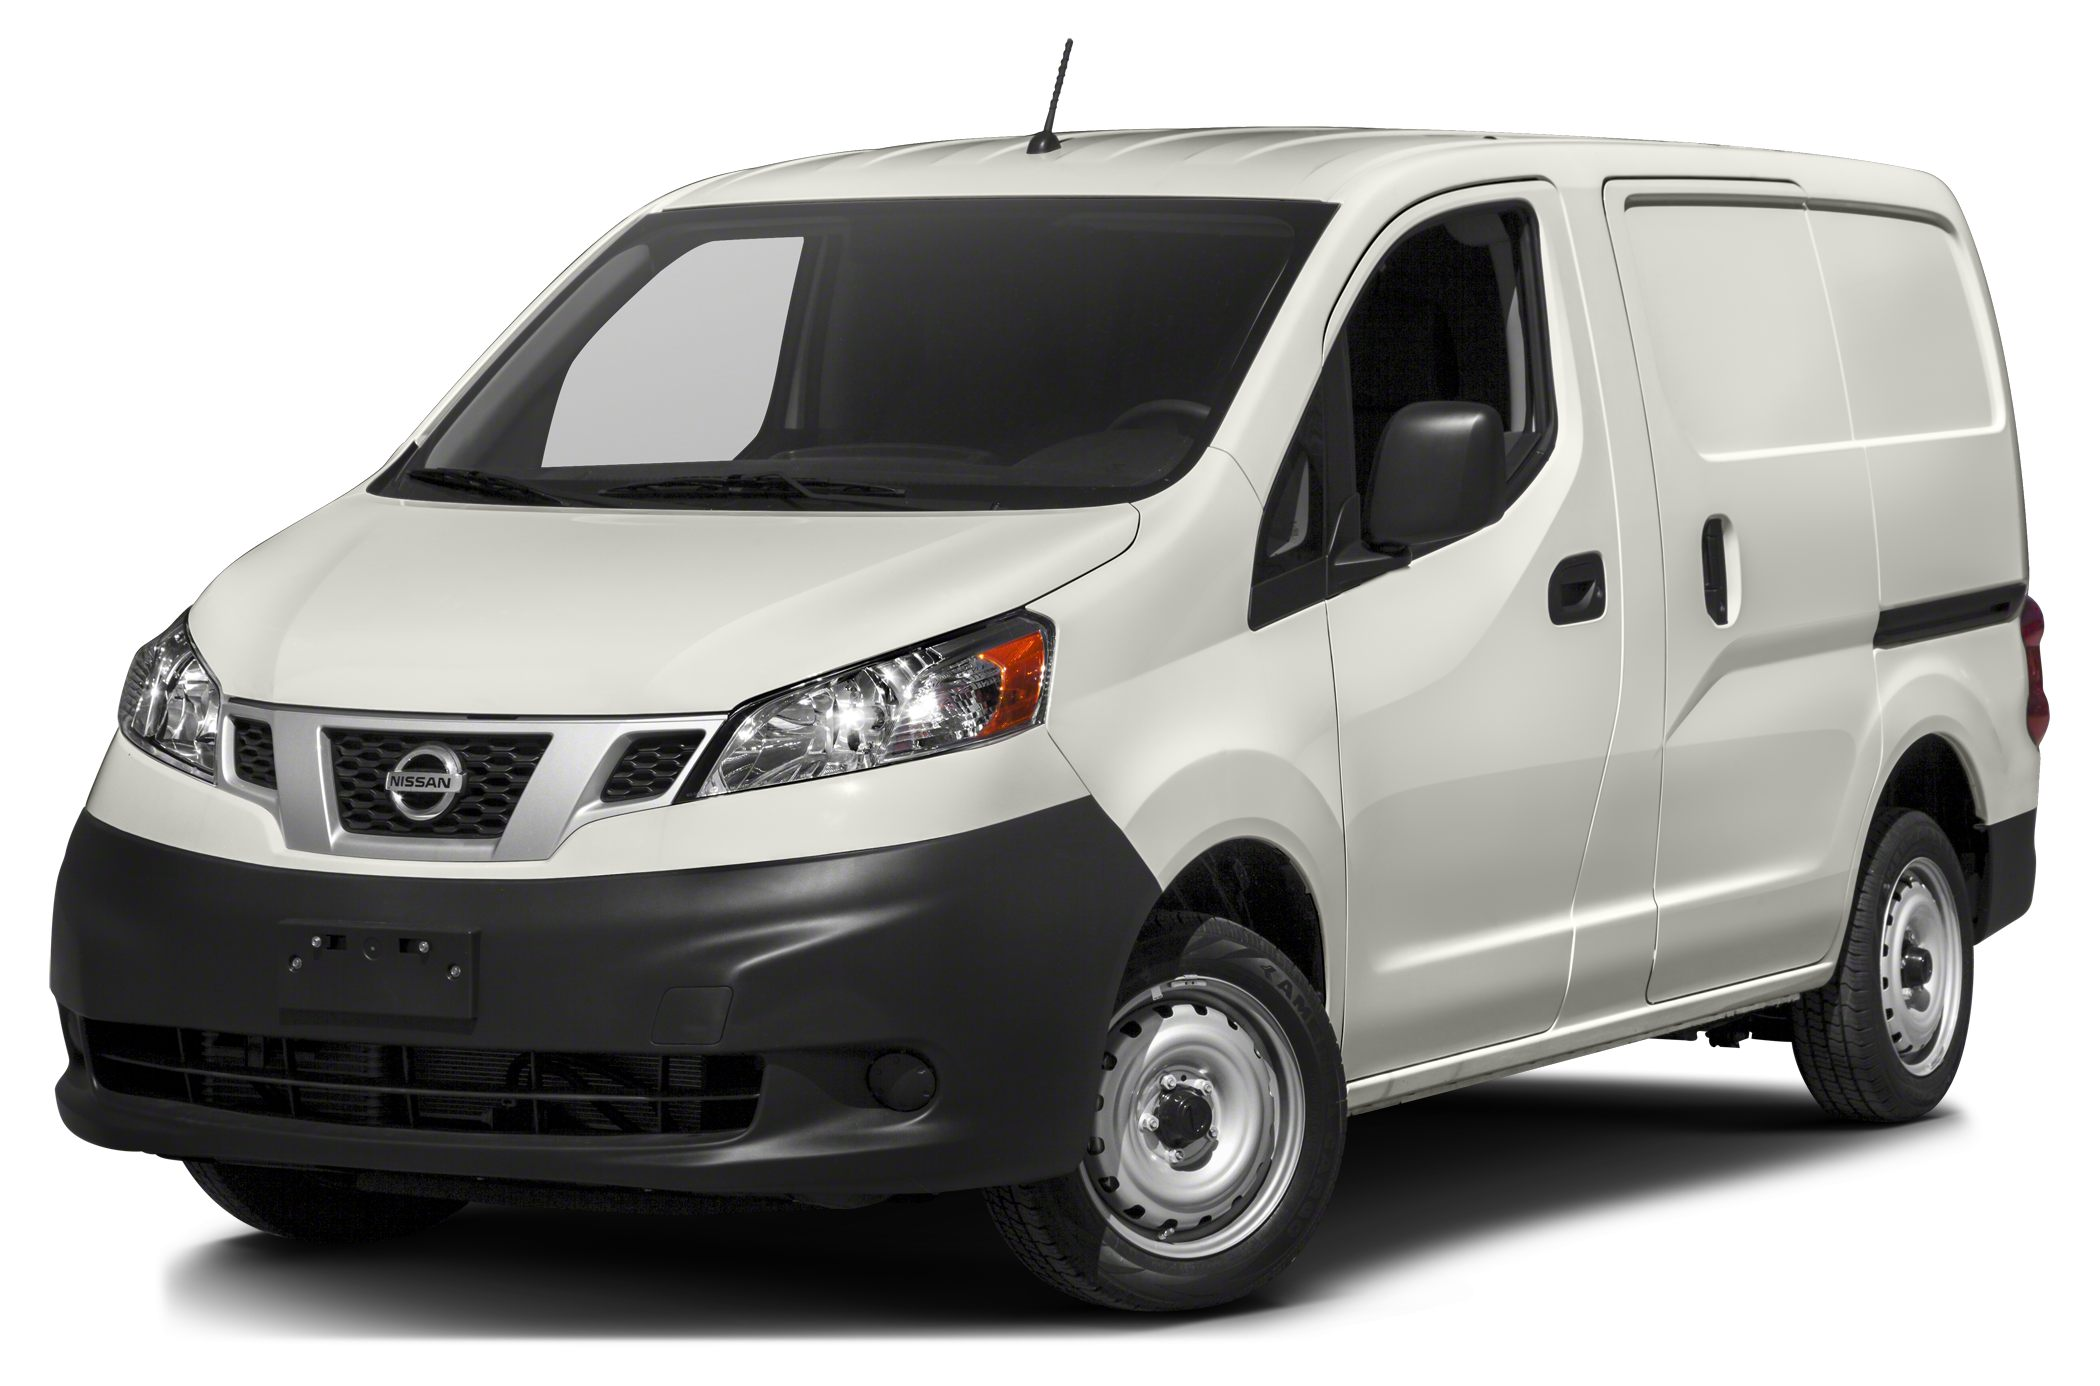 nissan nv200 news photos and buying information autoblog. Black Bedroom Furniture Sets. Home Design Ideas